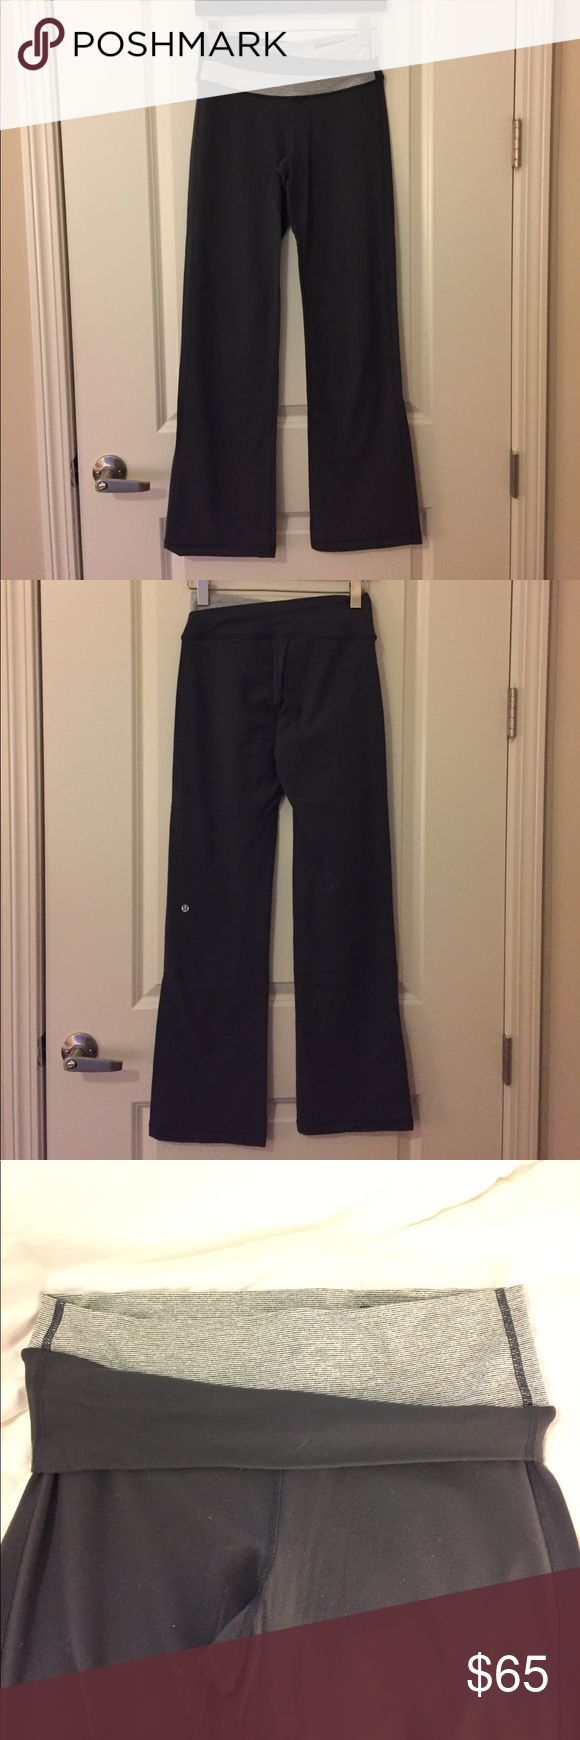 Lululemon Astro Yoga Pant Like new Lululemon Astro yoga Pant. Four way stretch  & moisture wicking. Slight flare. Waistband can be worn up or with 1/2 folded down for low rise fit. lululemon athletica Pants